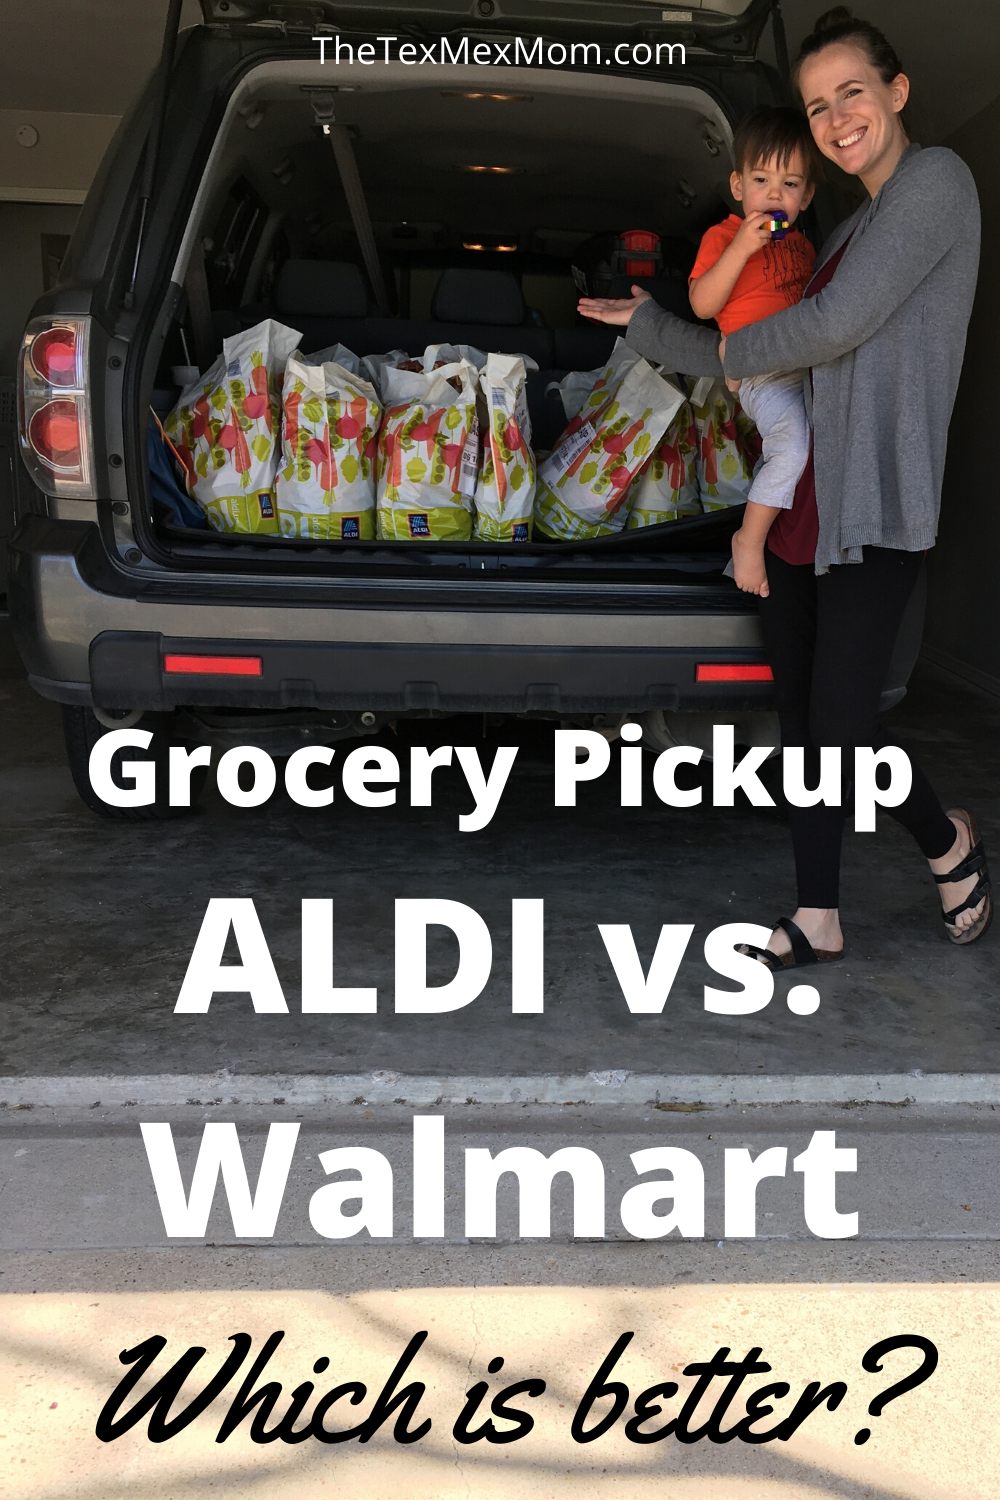 Grocery pickup at ALDI vs. Walmart - which is better?